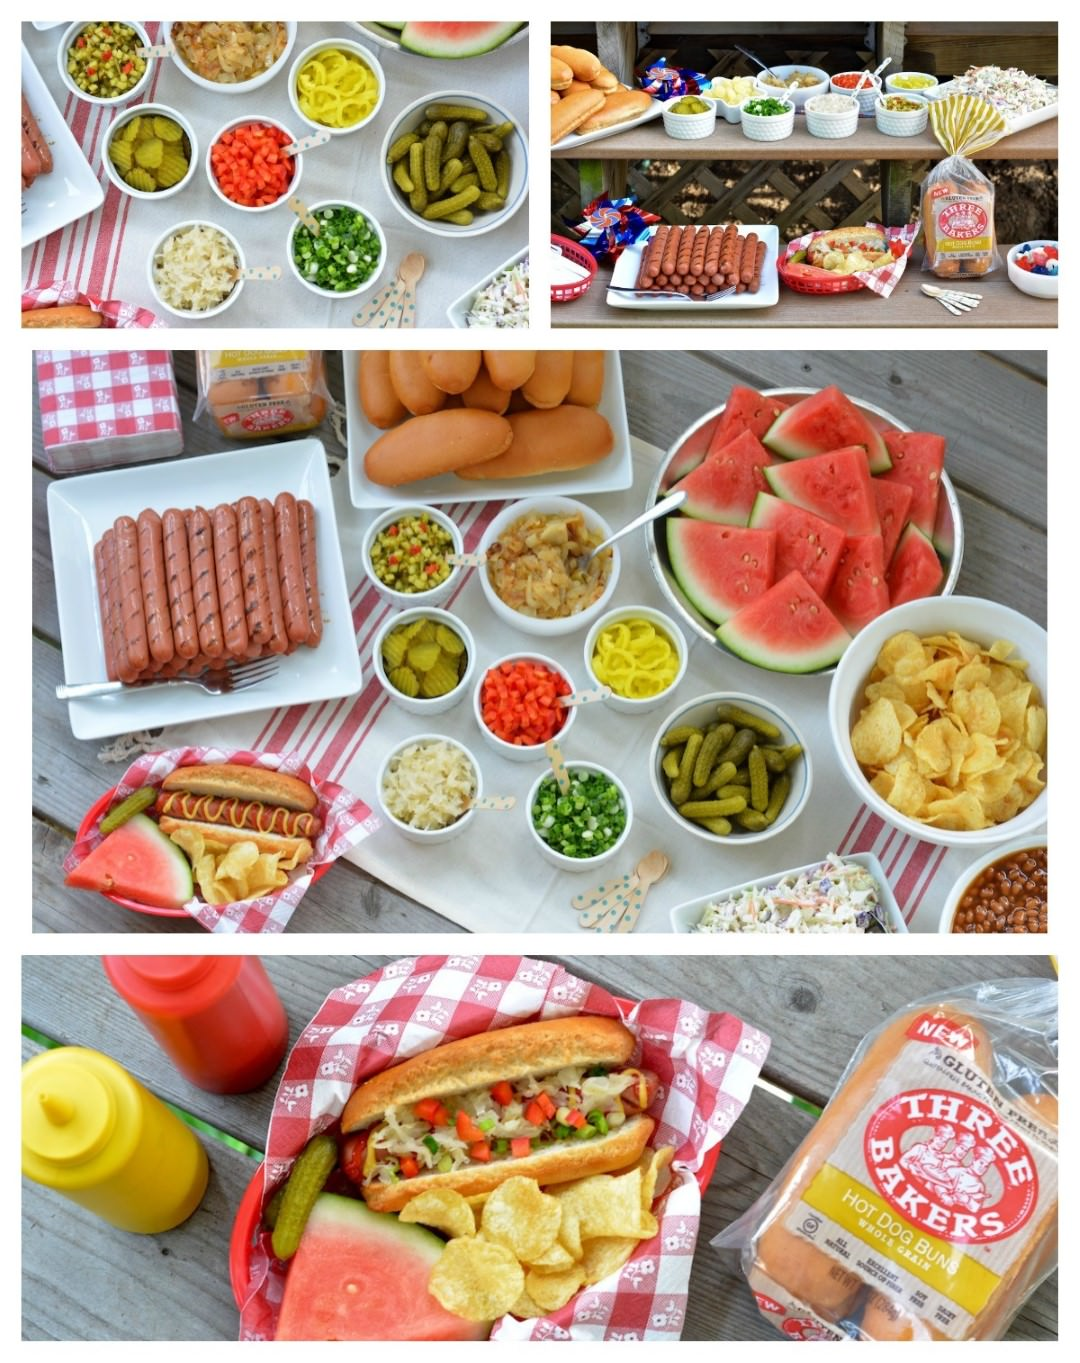 Celebrate Summer with a Festive Hot Dog Bar - Three Bakers